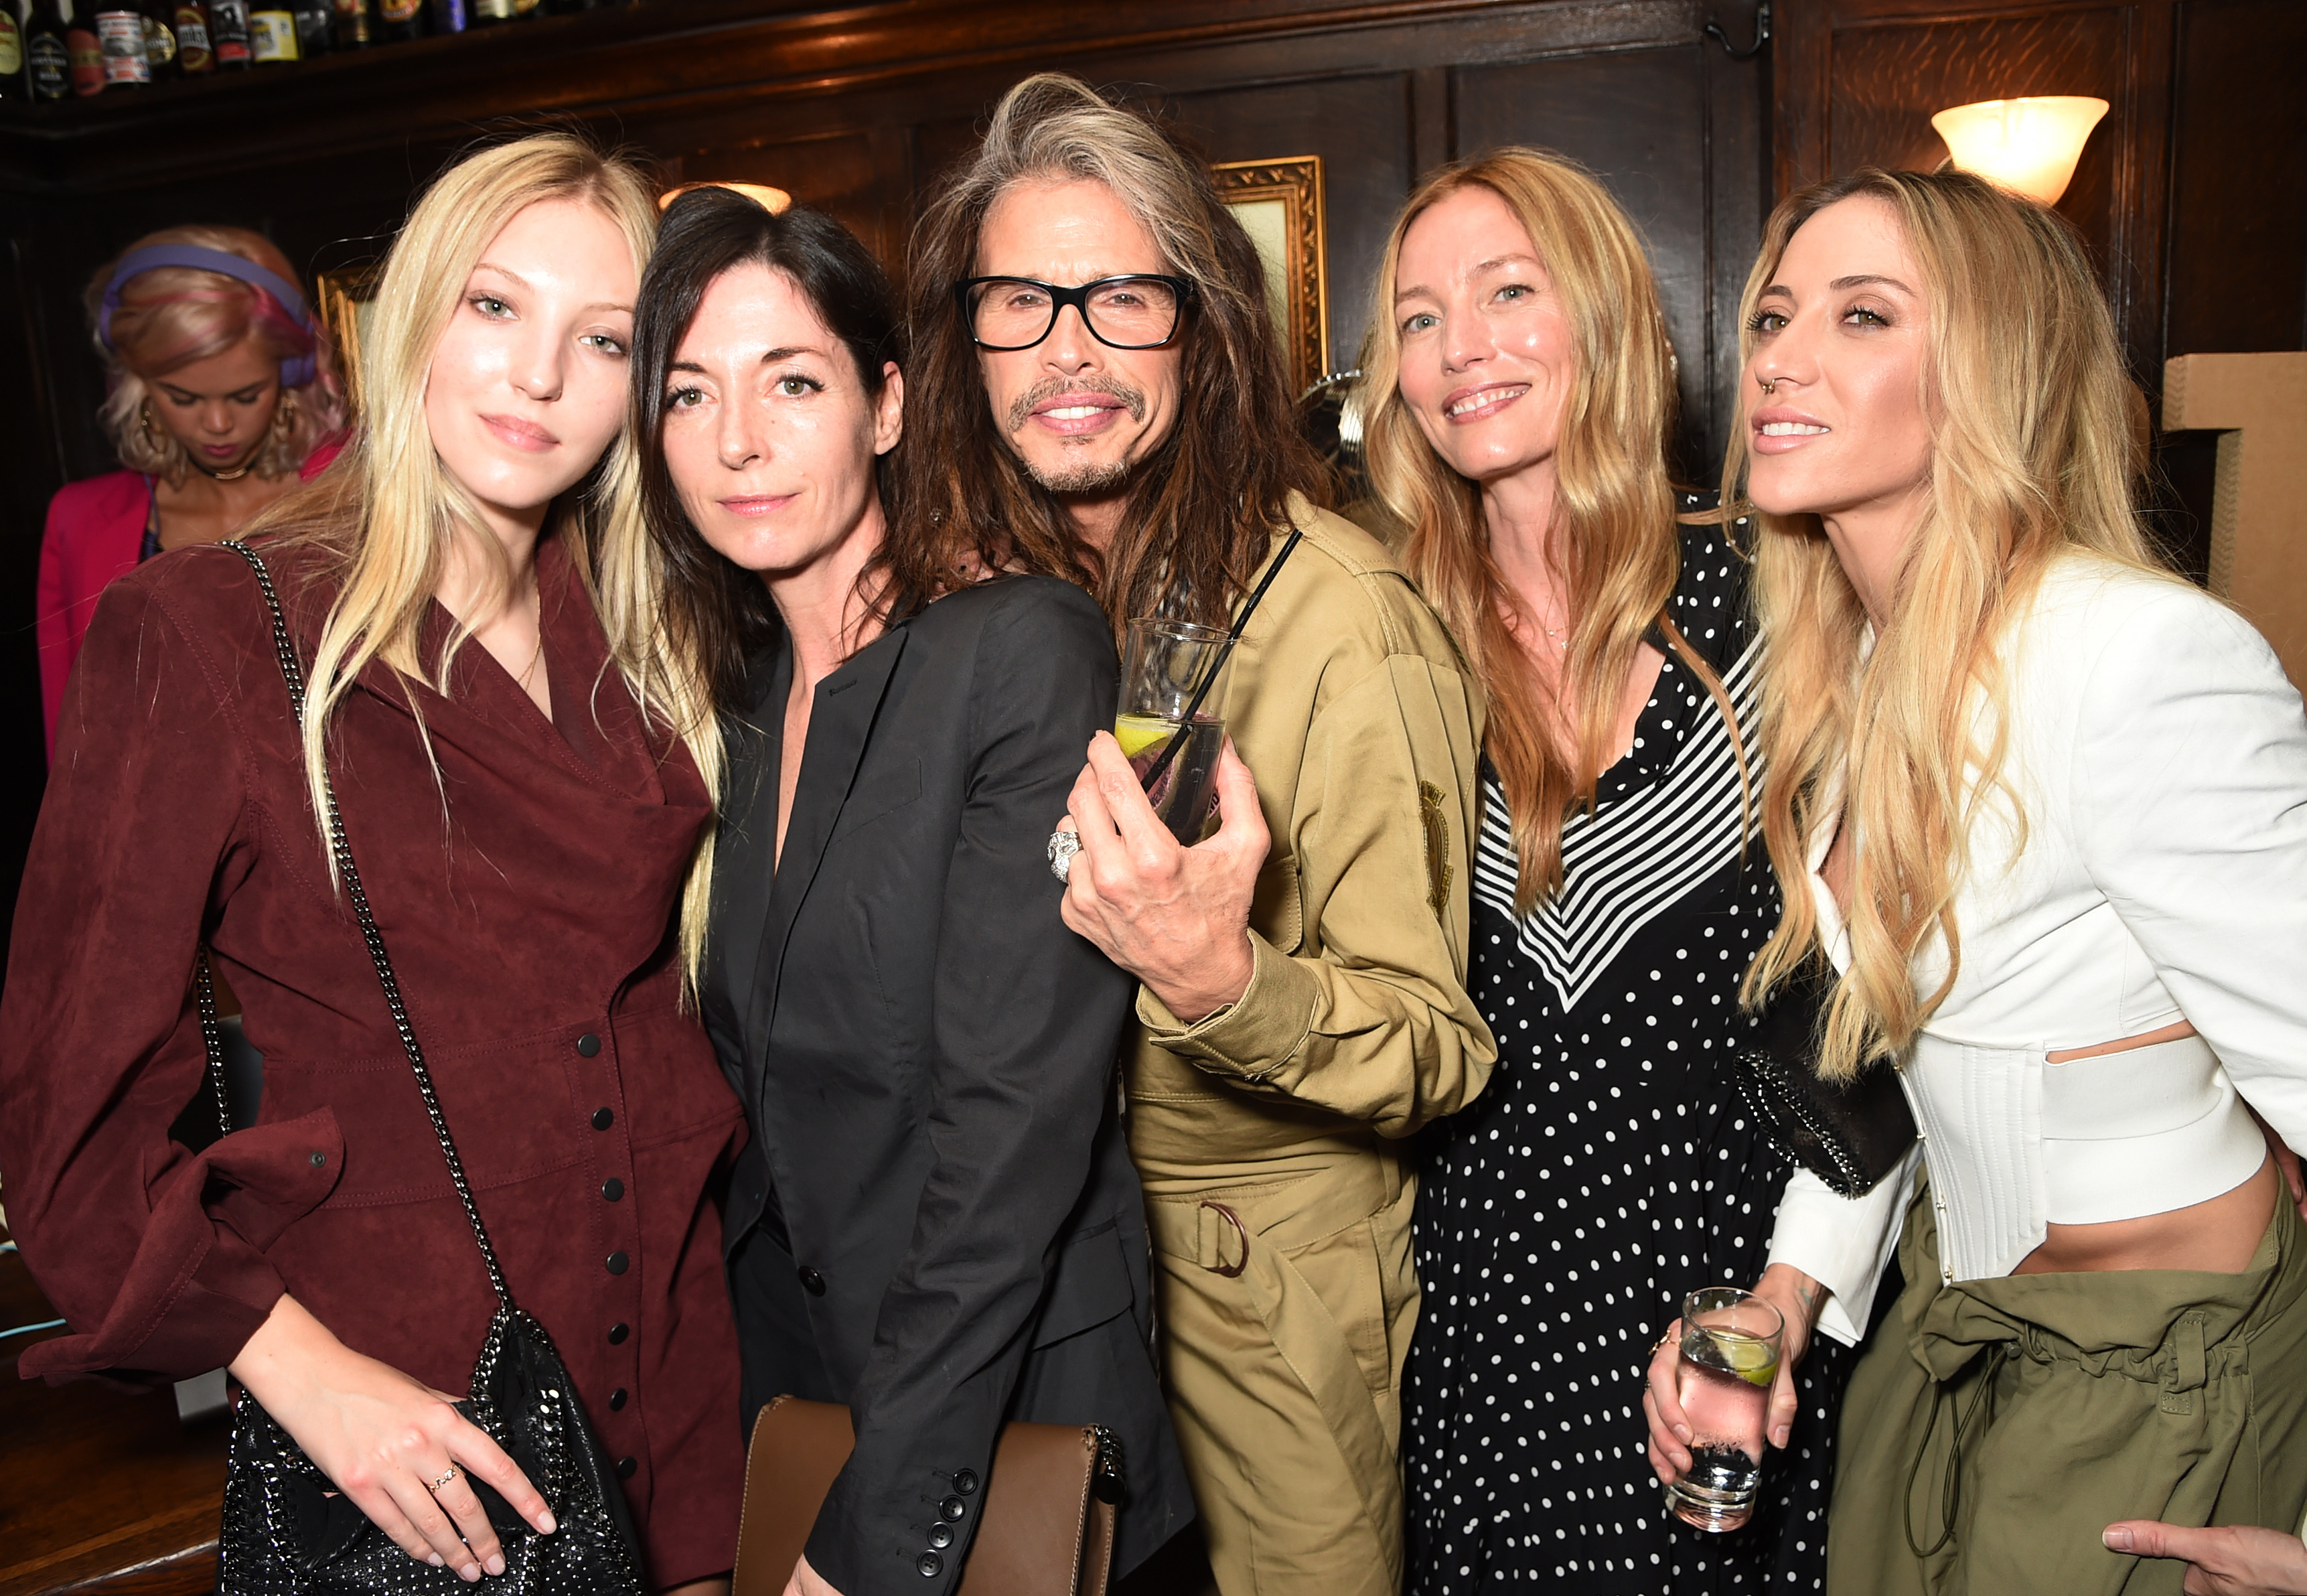 Ella Richards, Mary McCartney, Steven Tyler, Lucie de la Falaise Aimee Ann Preston